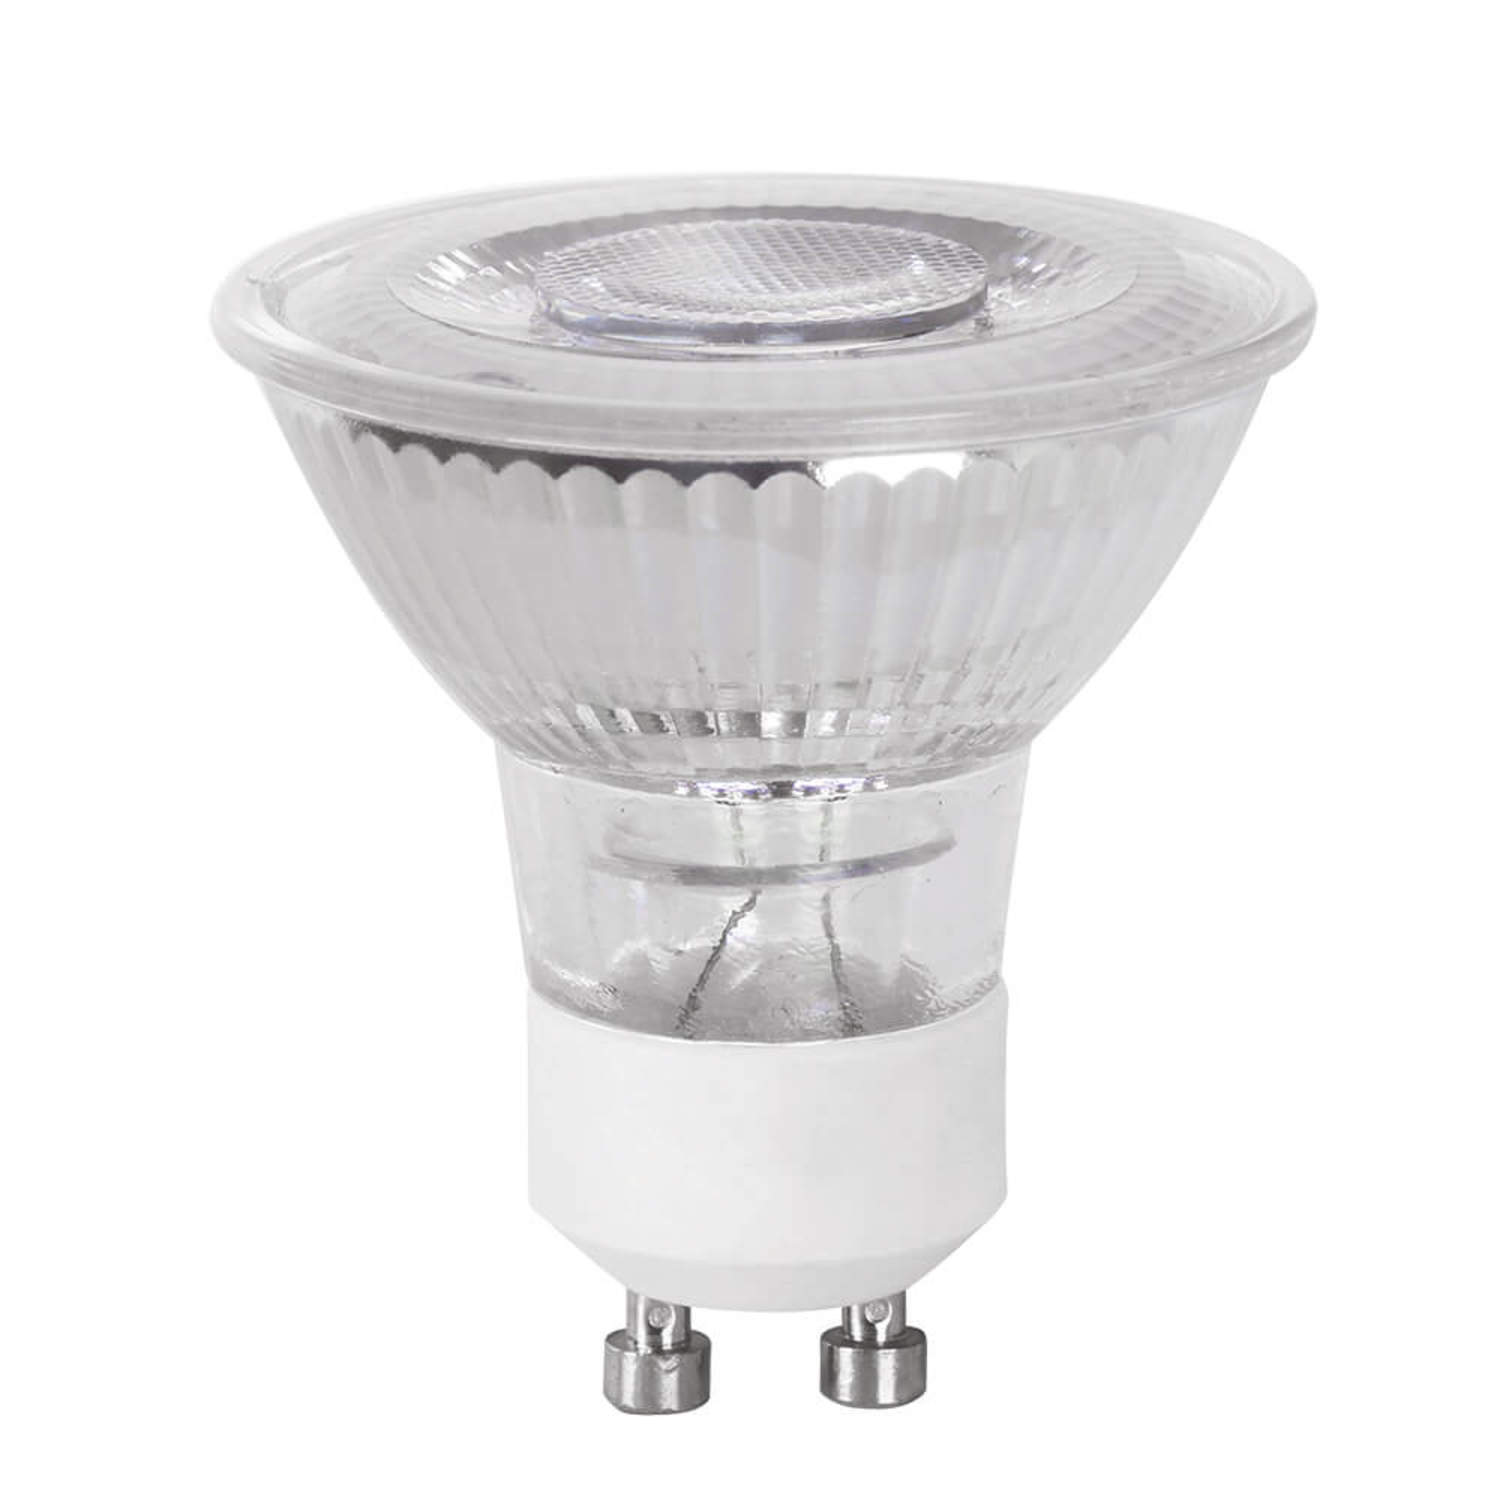 500 Lumen Is Hoeveel Watt Feit Electric Bpmr16 Gu10 500ledg2 500 Lumen 3000k